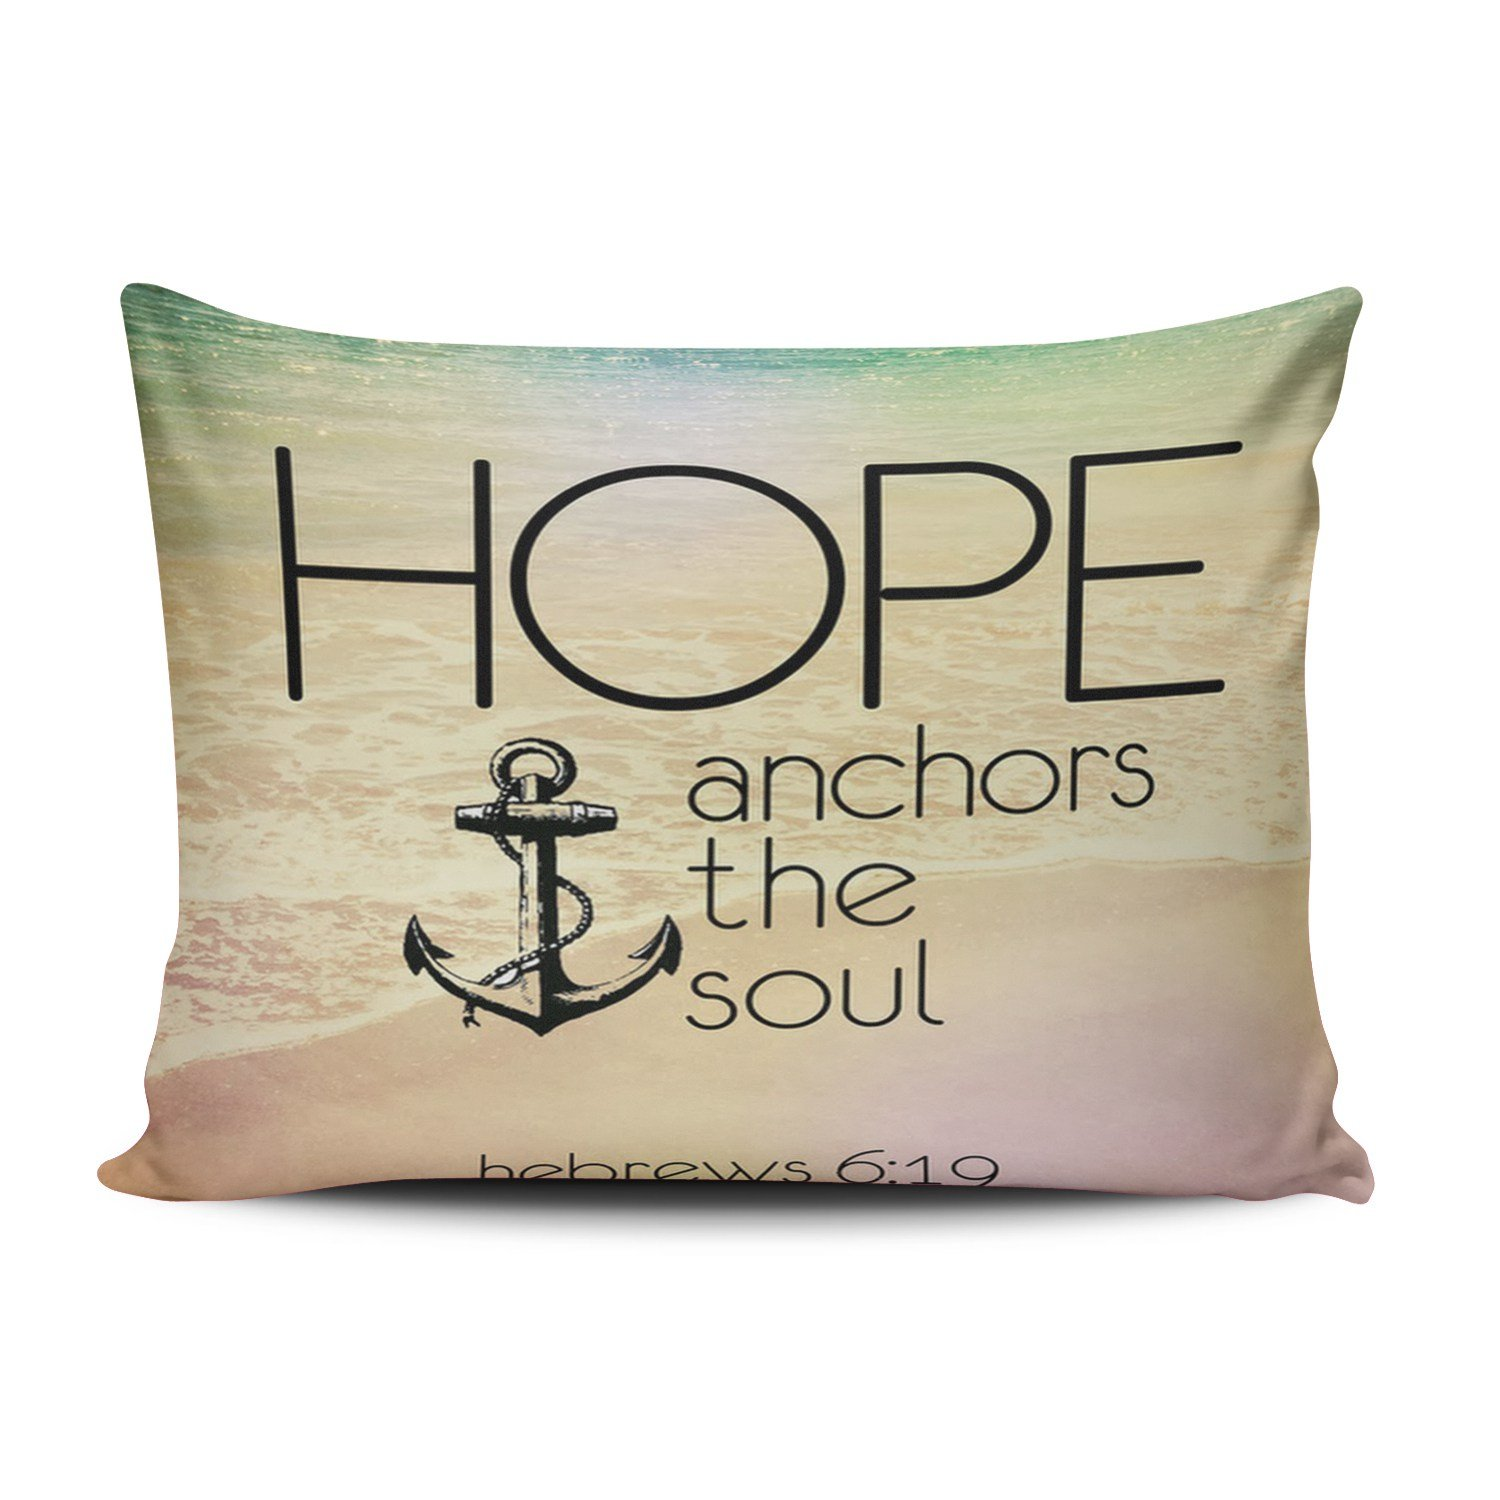 KEIBIKE Pillow Case Christian Religious Bible Verse Inspirational Quotes Hebrews 6:19 Hope Anchor the Soul Personalized Rectangle Pillowcases Decorative Throw Pillow Covers Cases Queen 20x30 Inches